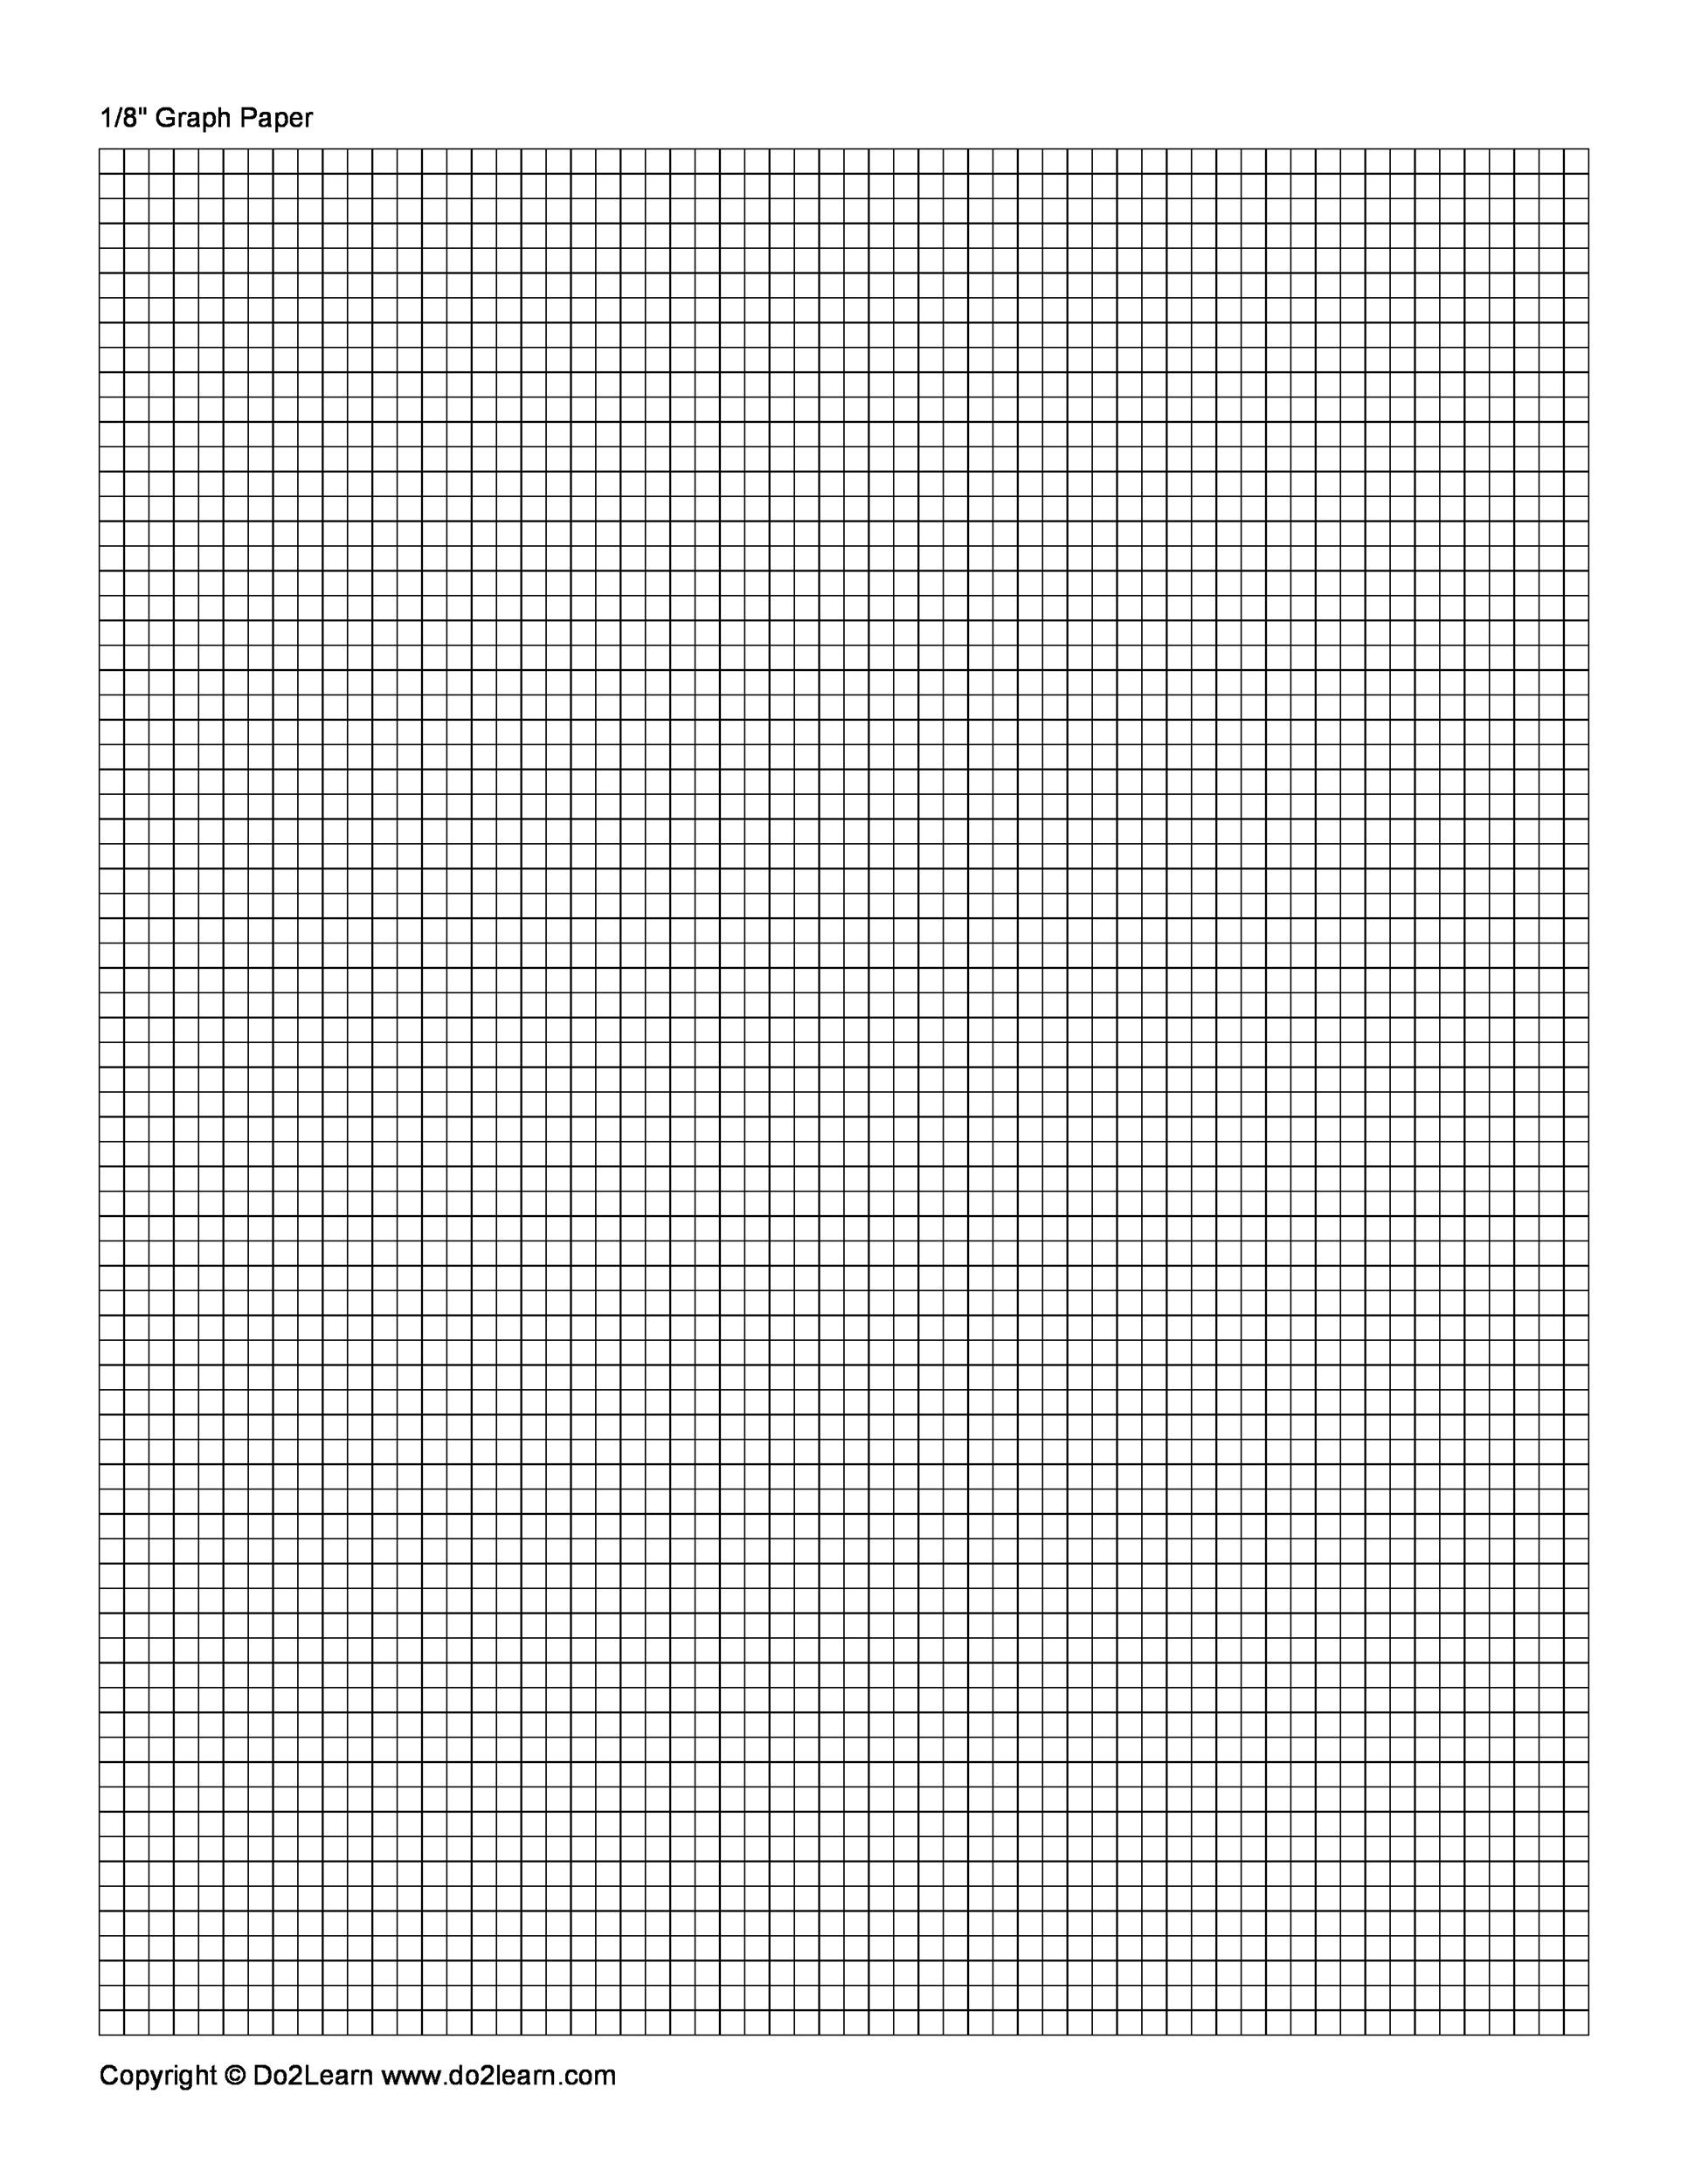 Printable Graph Paper Template 01  Lined Paper Word